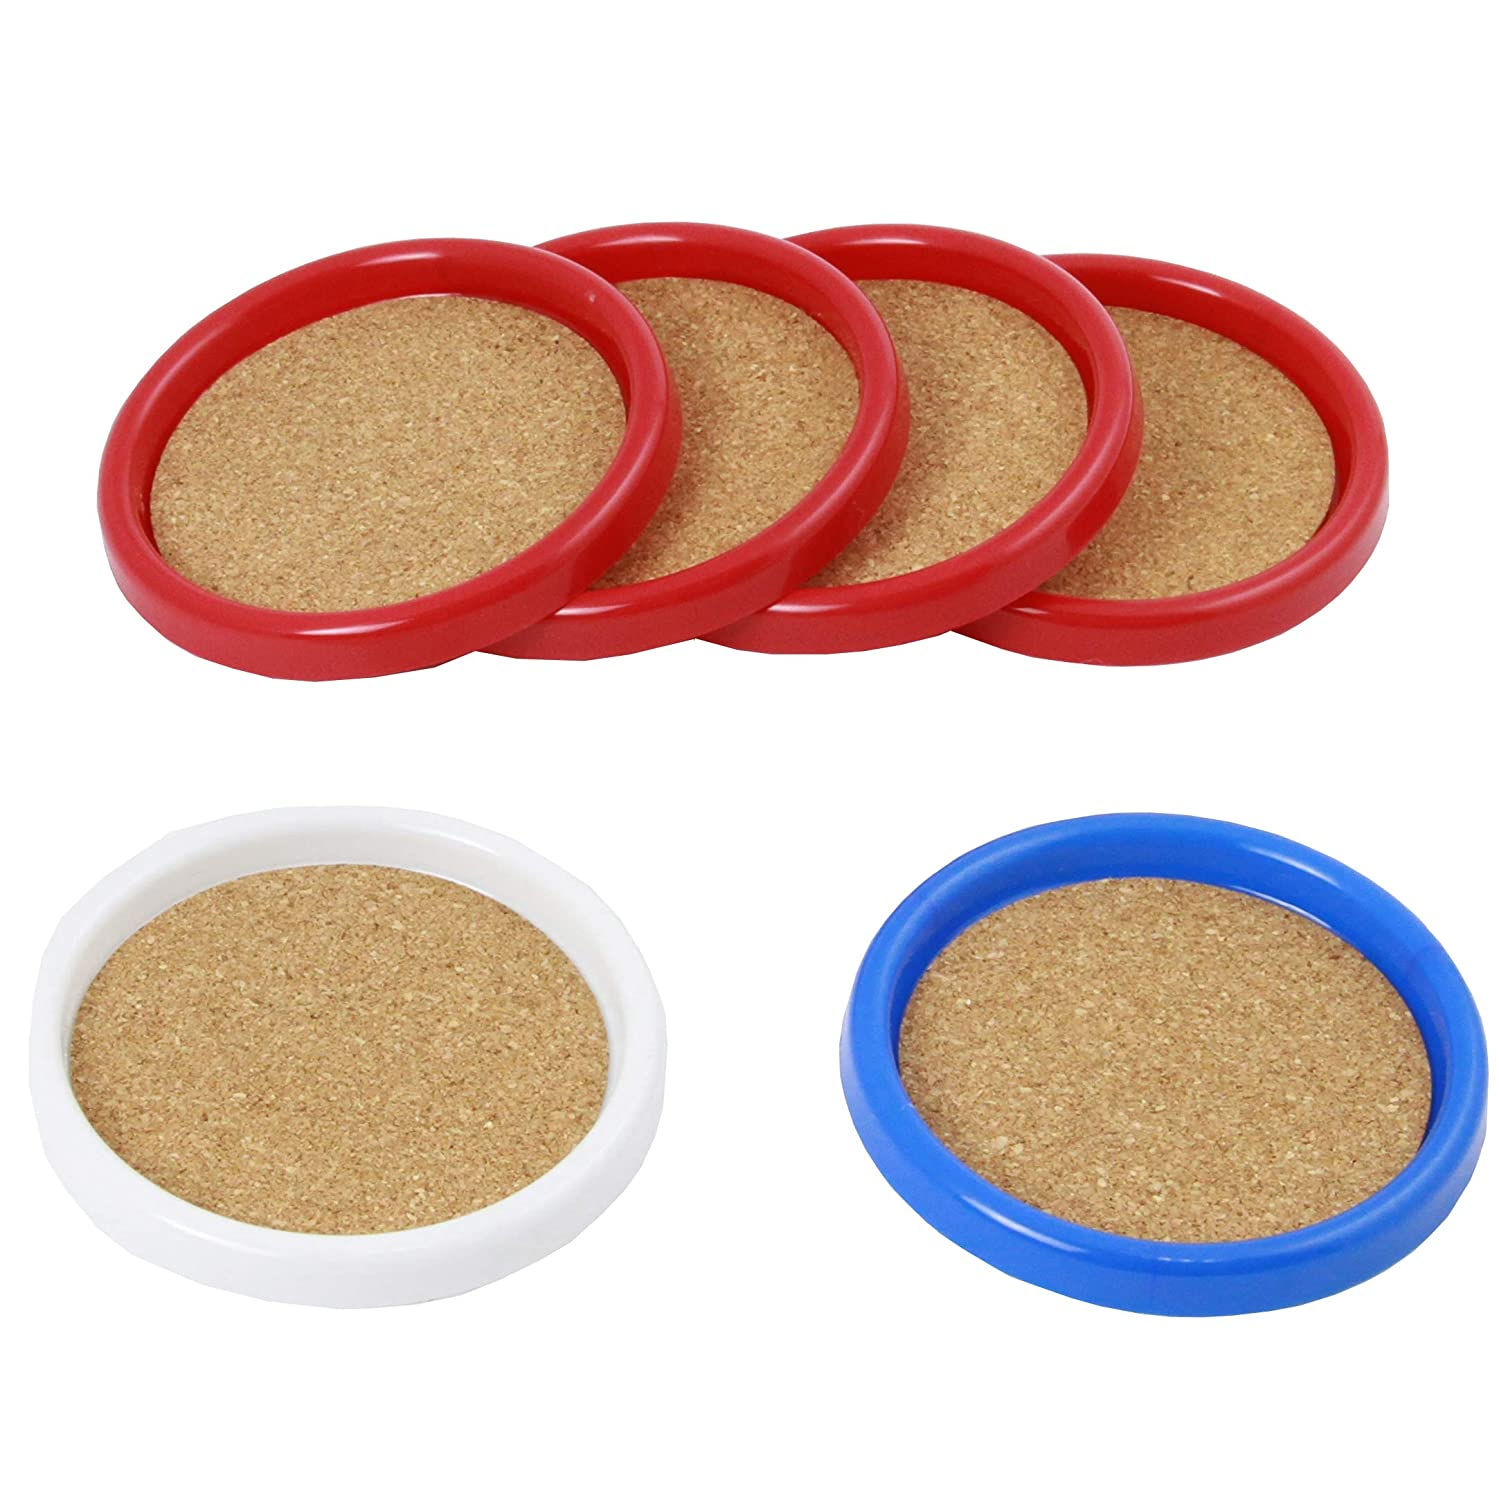 Chef Craft Cork Coasters with Plastic Frame assorted colors